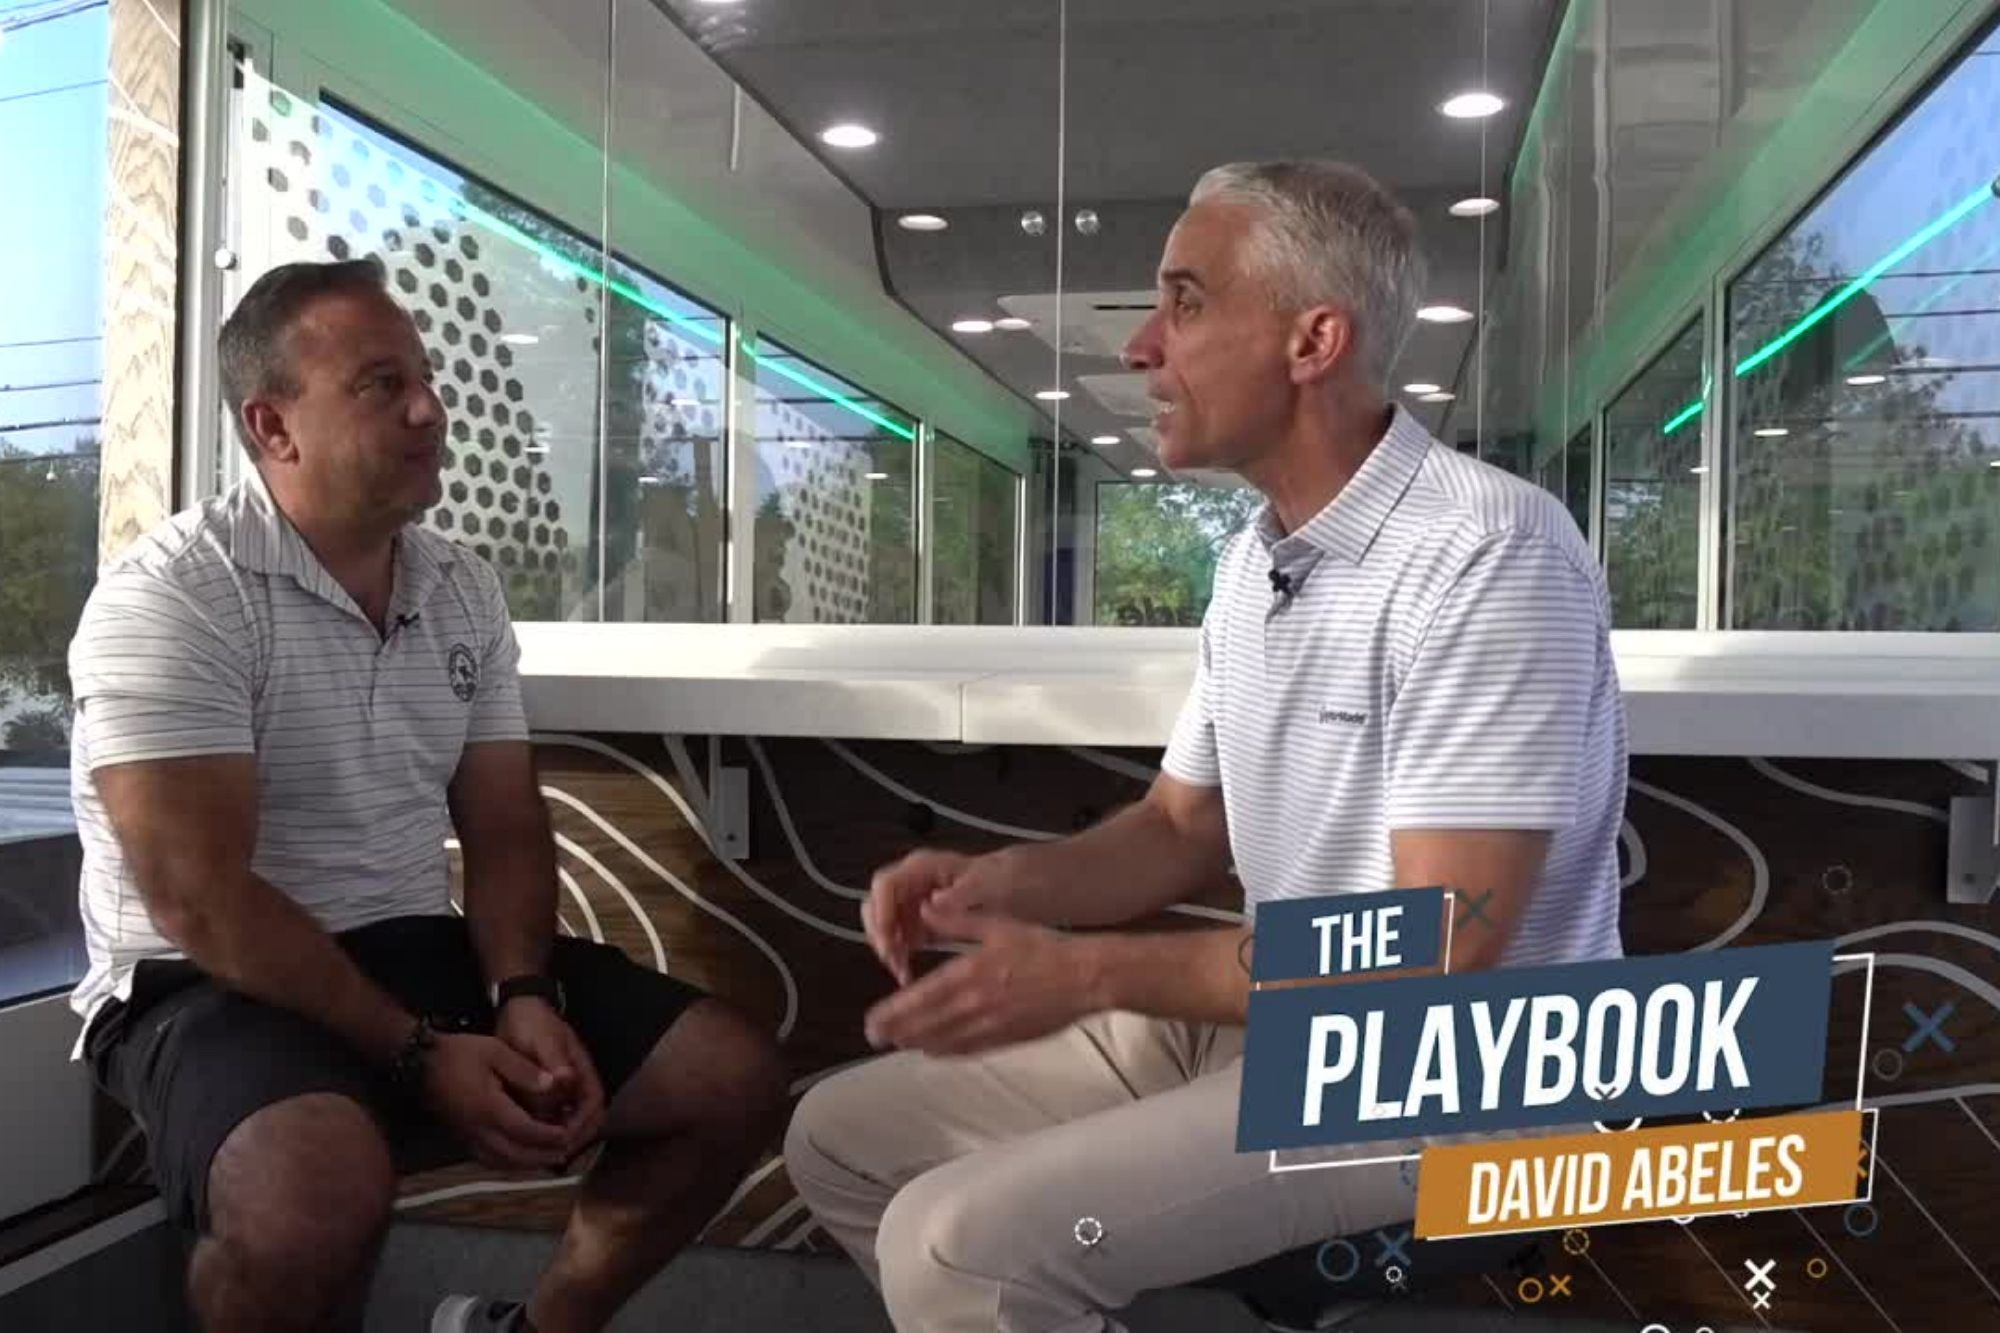 TaylorMade CEO David Abeles Talks About the Importance of Innovation, Even in an Old-School Sport Like Golf